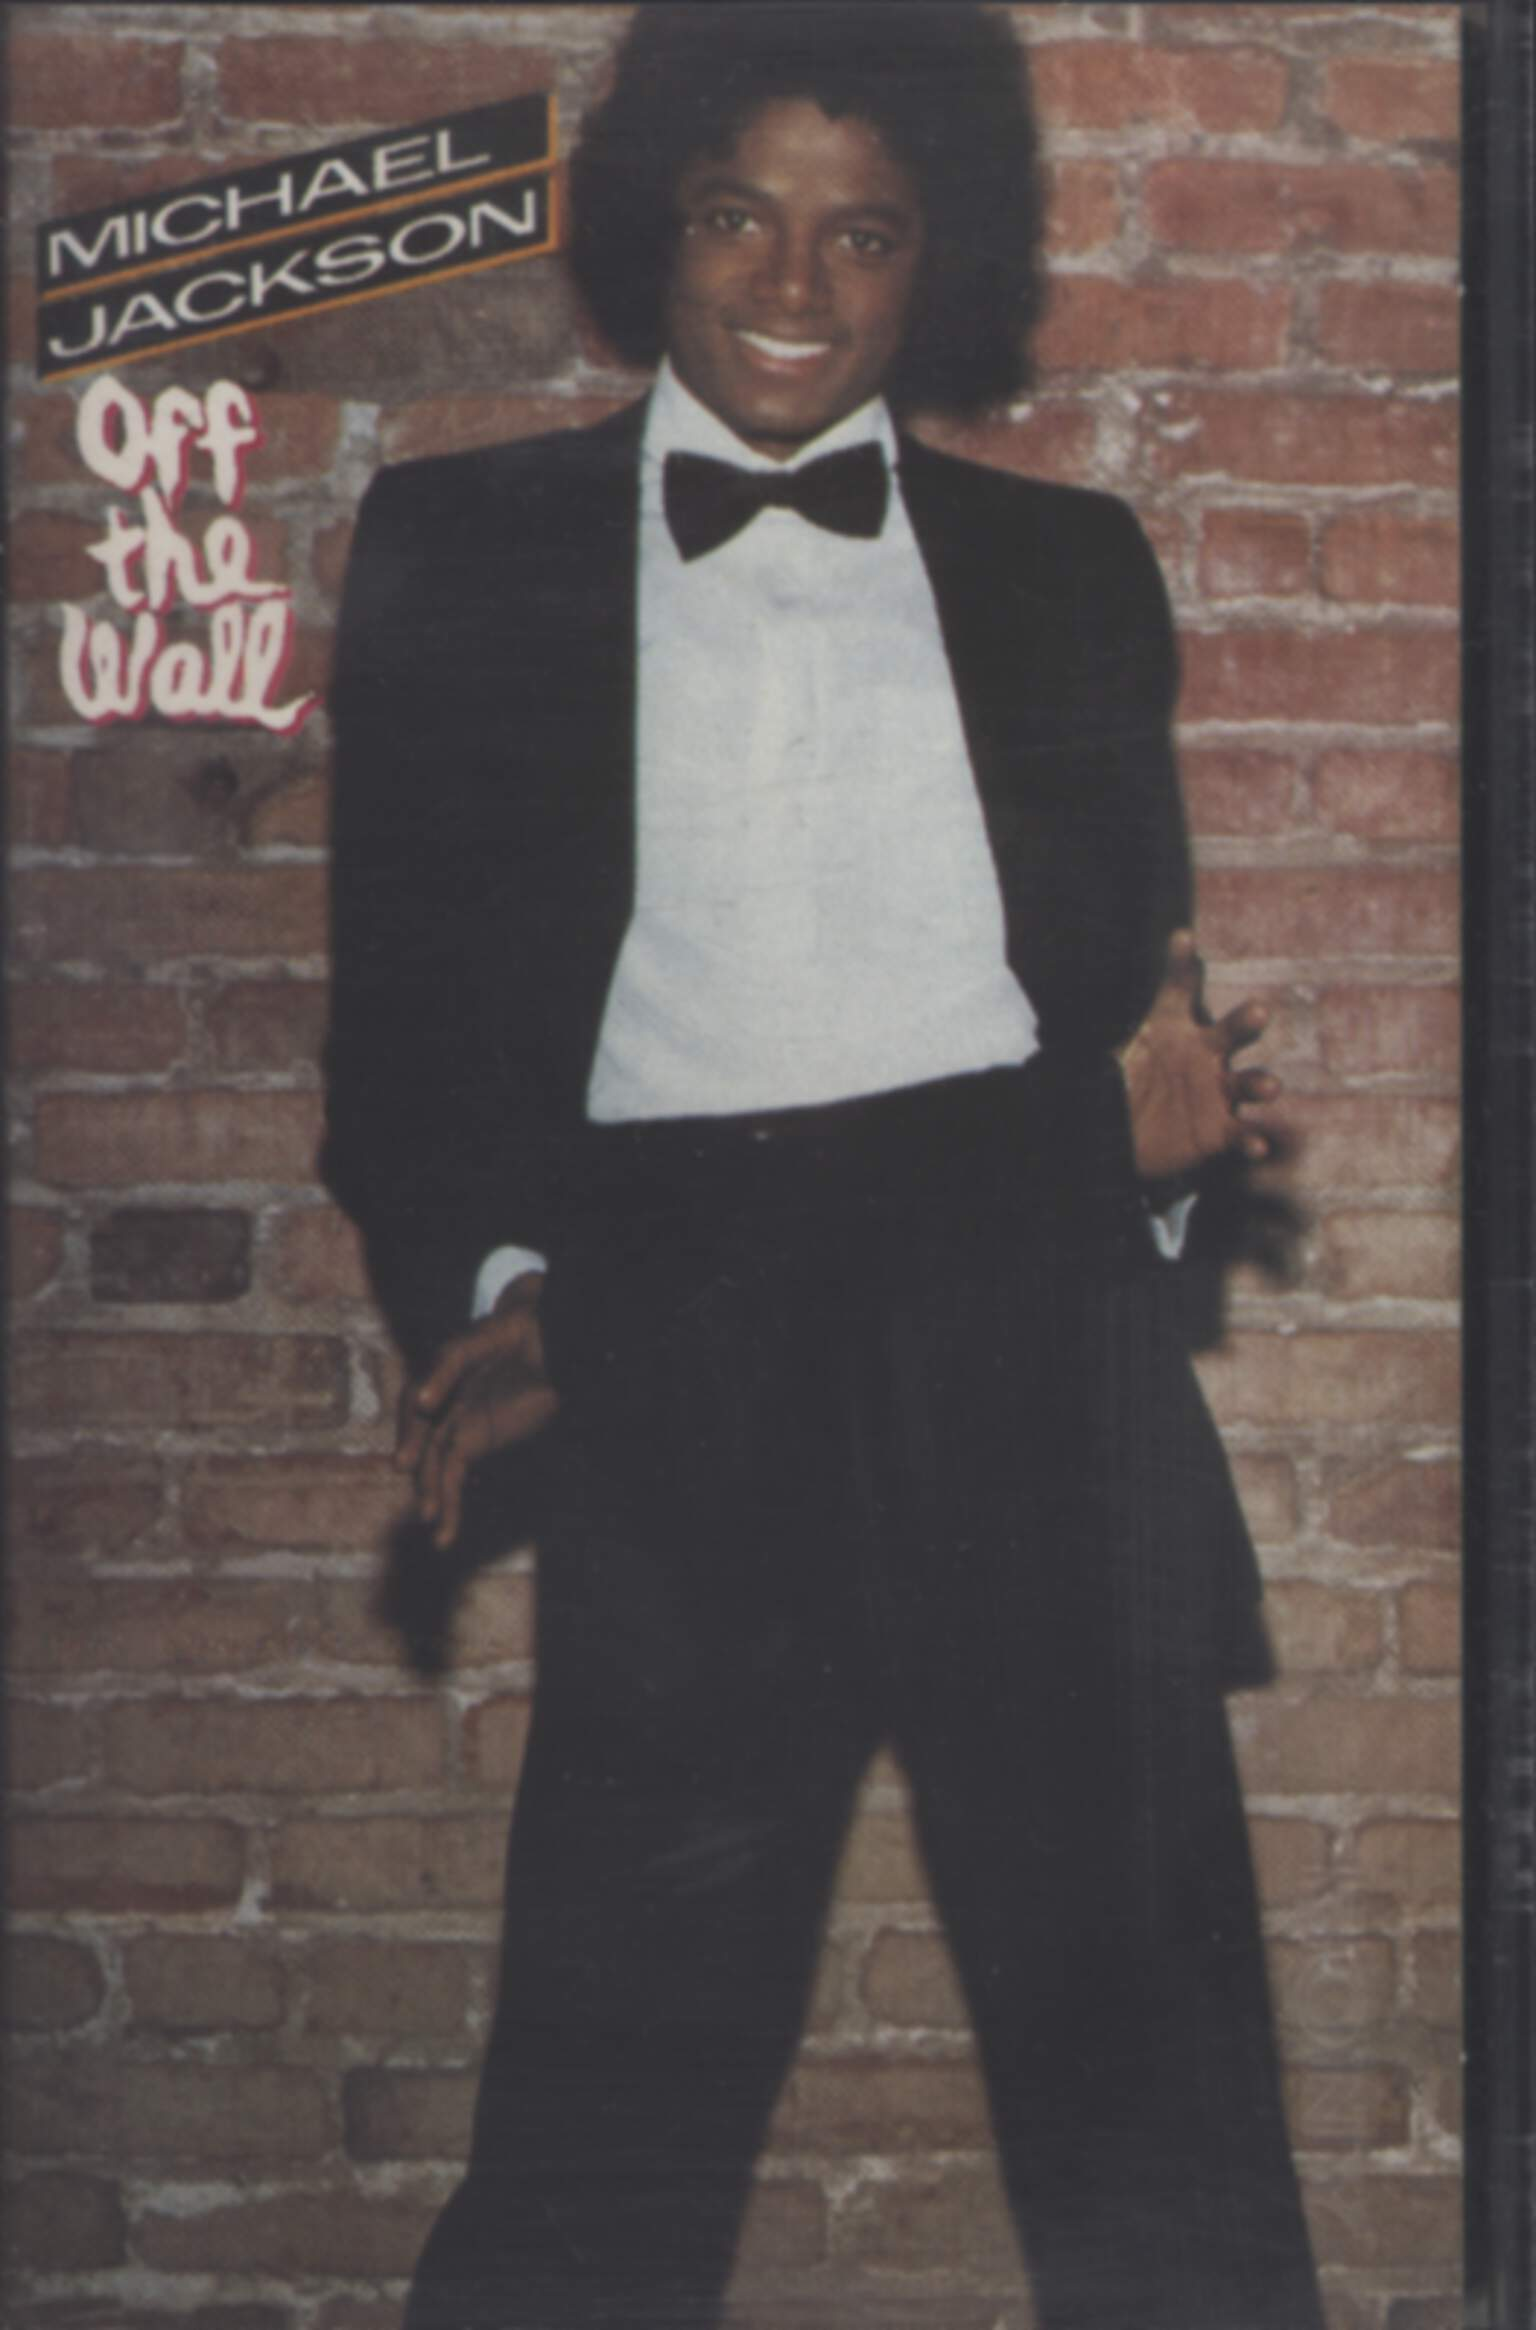 Michael Jackson: Off The Wall, Compact Cassette